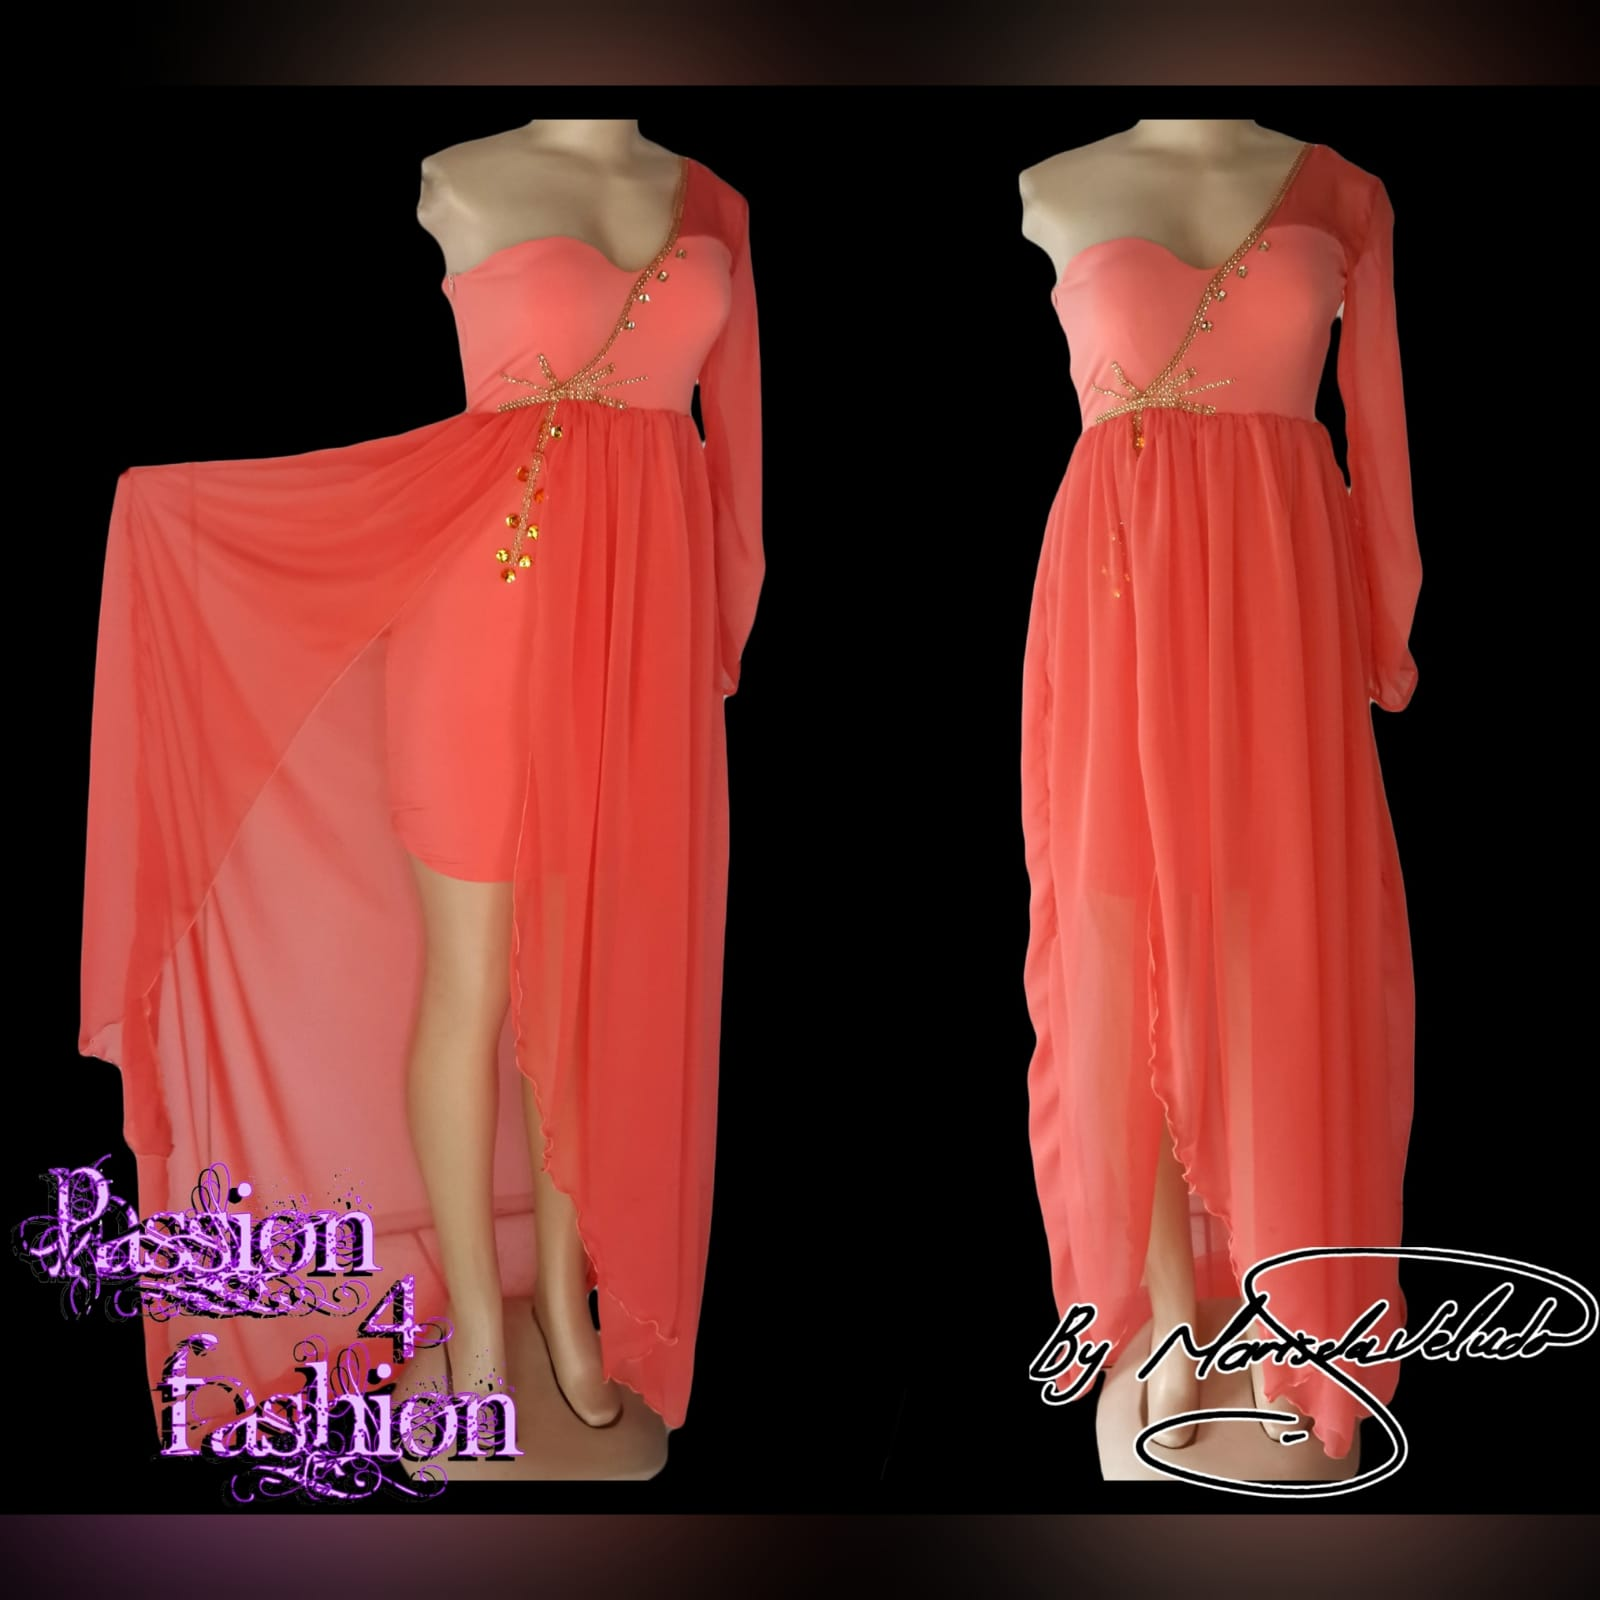 Bright coral flowy engagement dress 3 bright coral flowy engagement dress. Mini dress with a one shoulder and sleeve in chiffon, with an added gathered chiffon skirt part with a slit, dress detailed with gold bead work